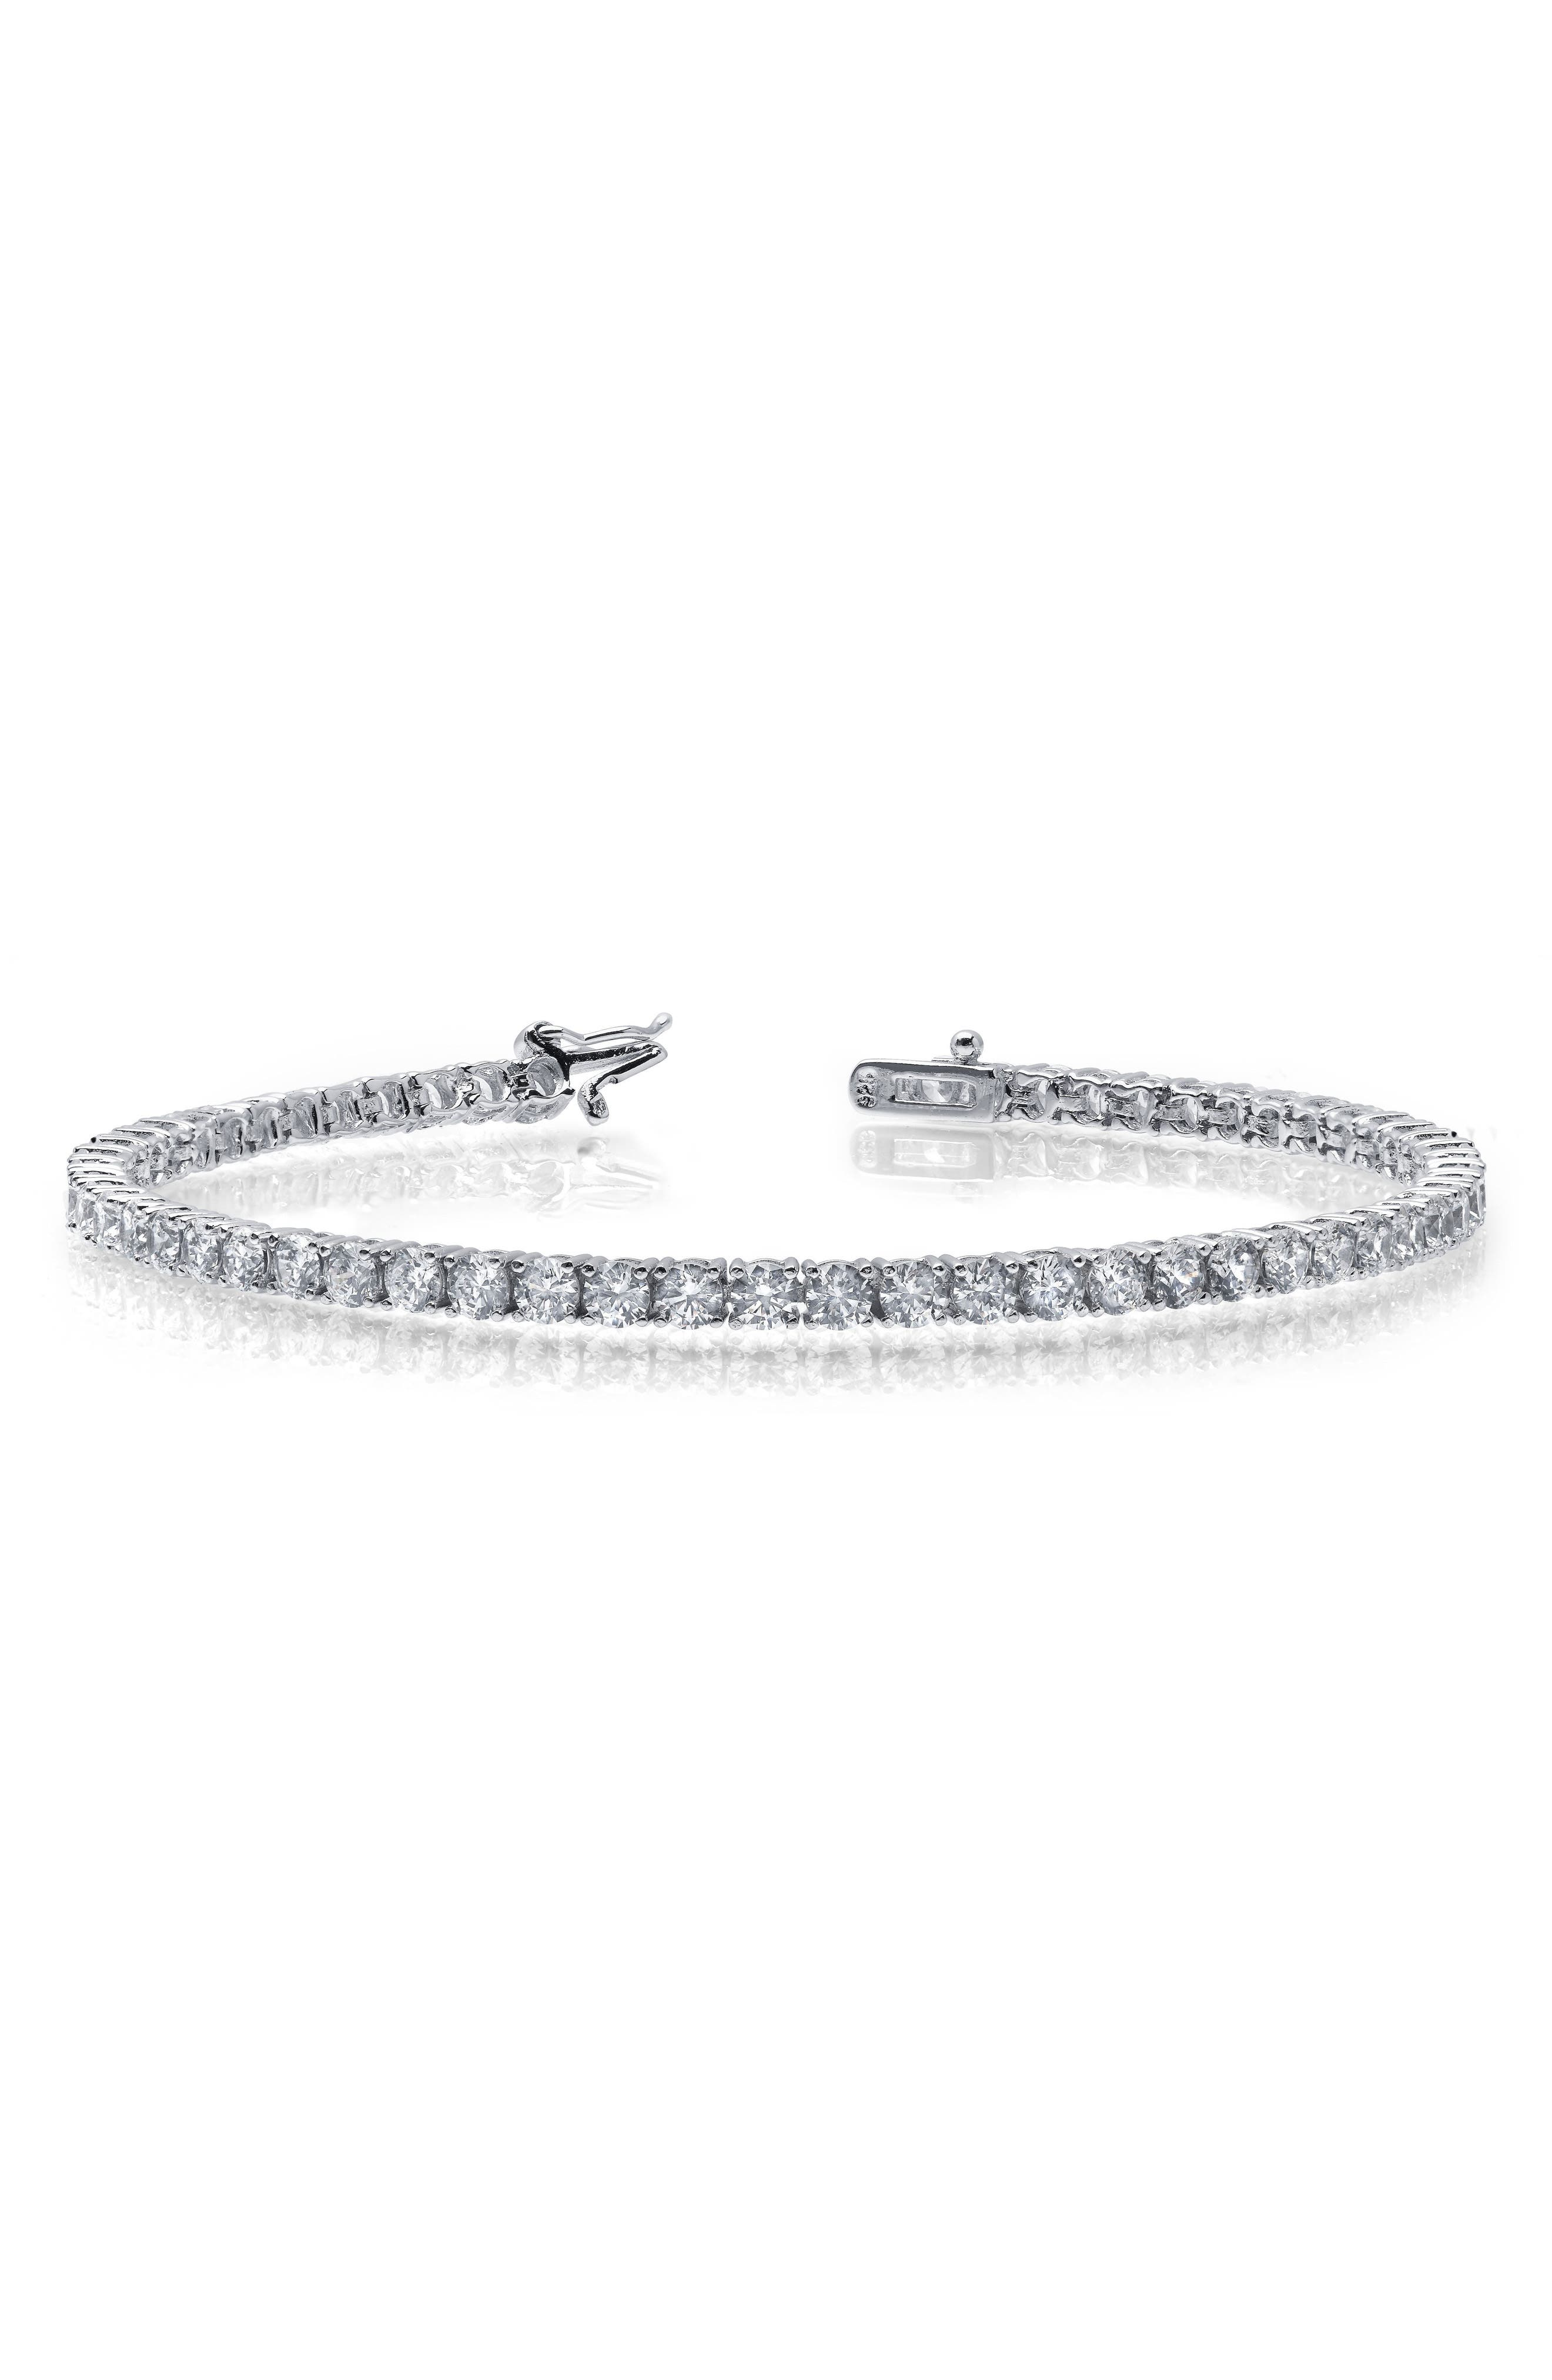 Simulated Diamond Bracelet,                             Main thumbnail 1, color,                             Silver/ Clear